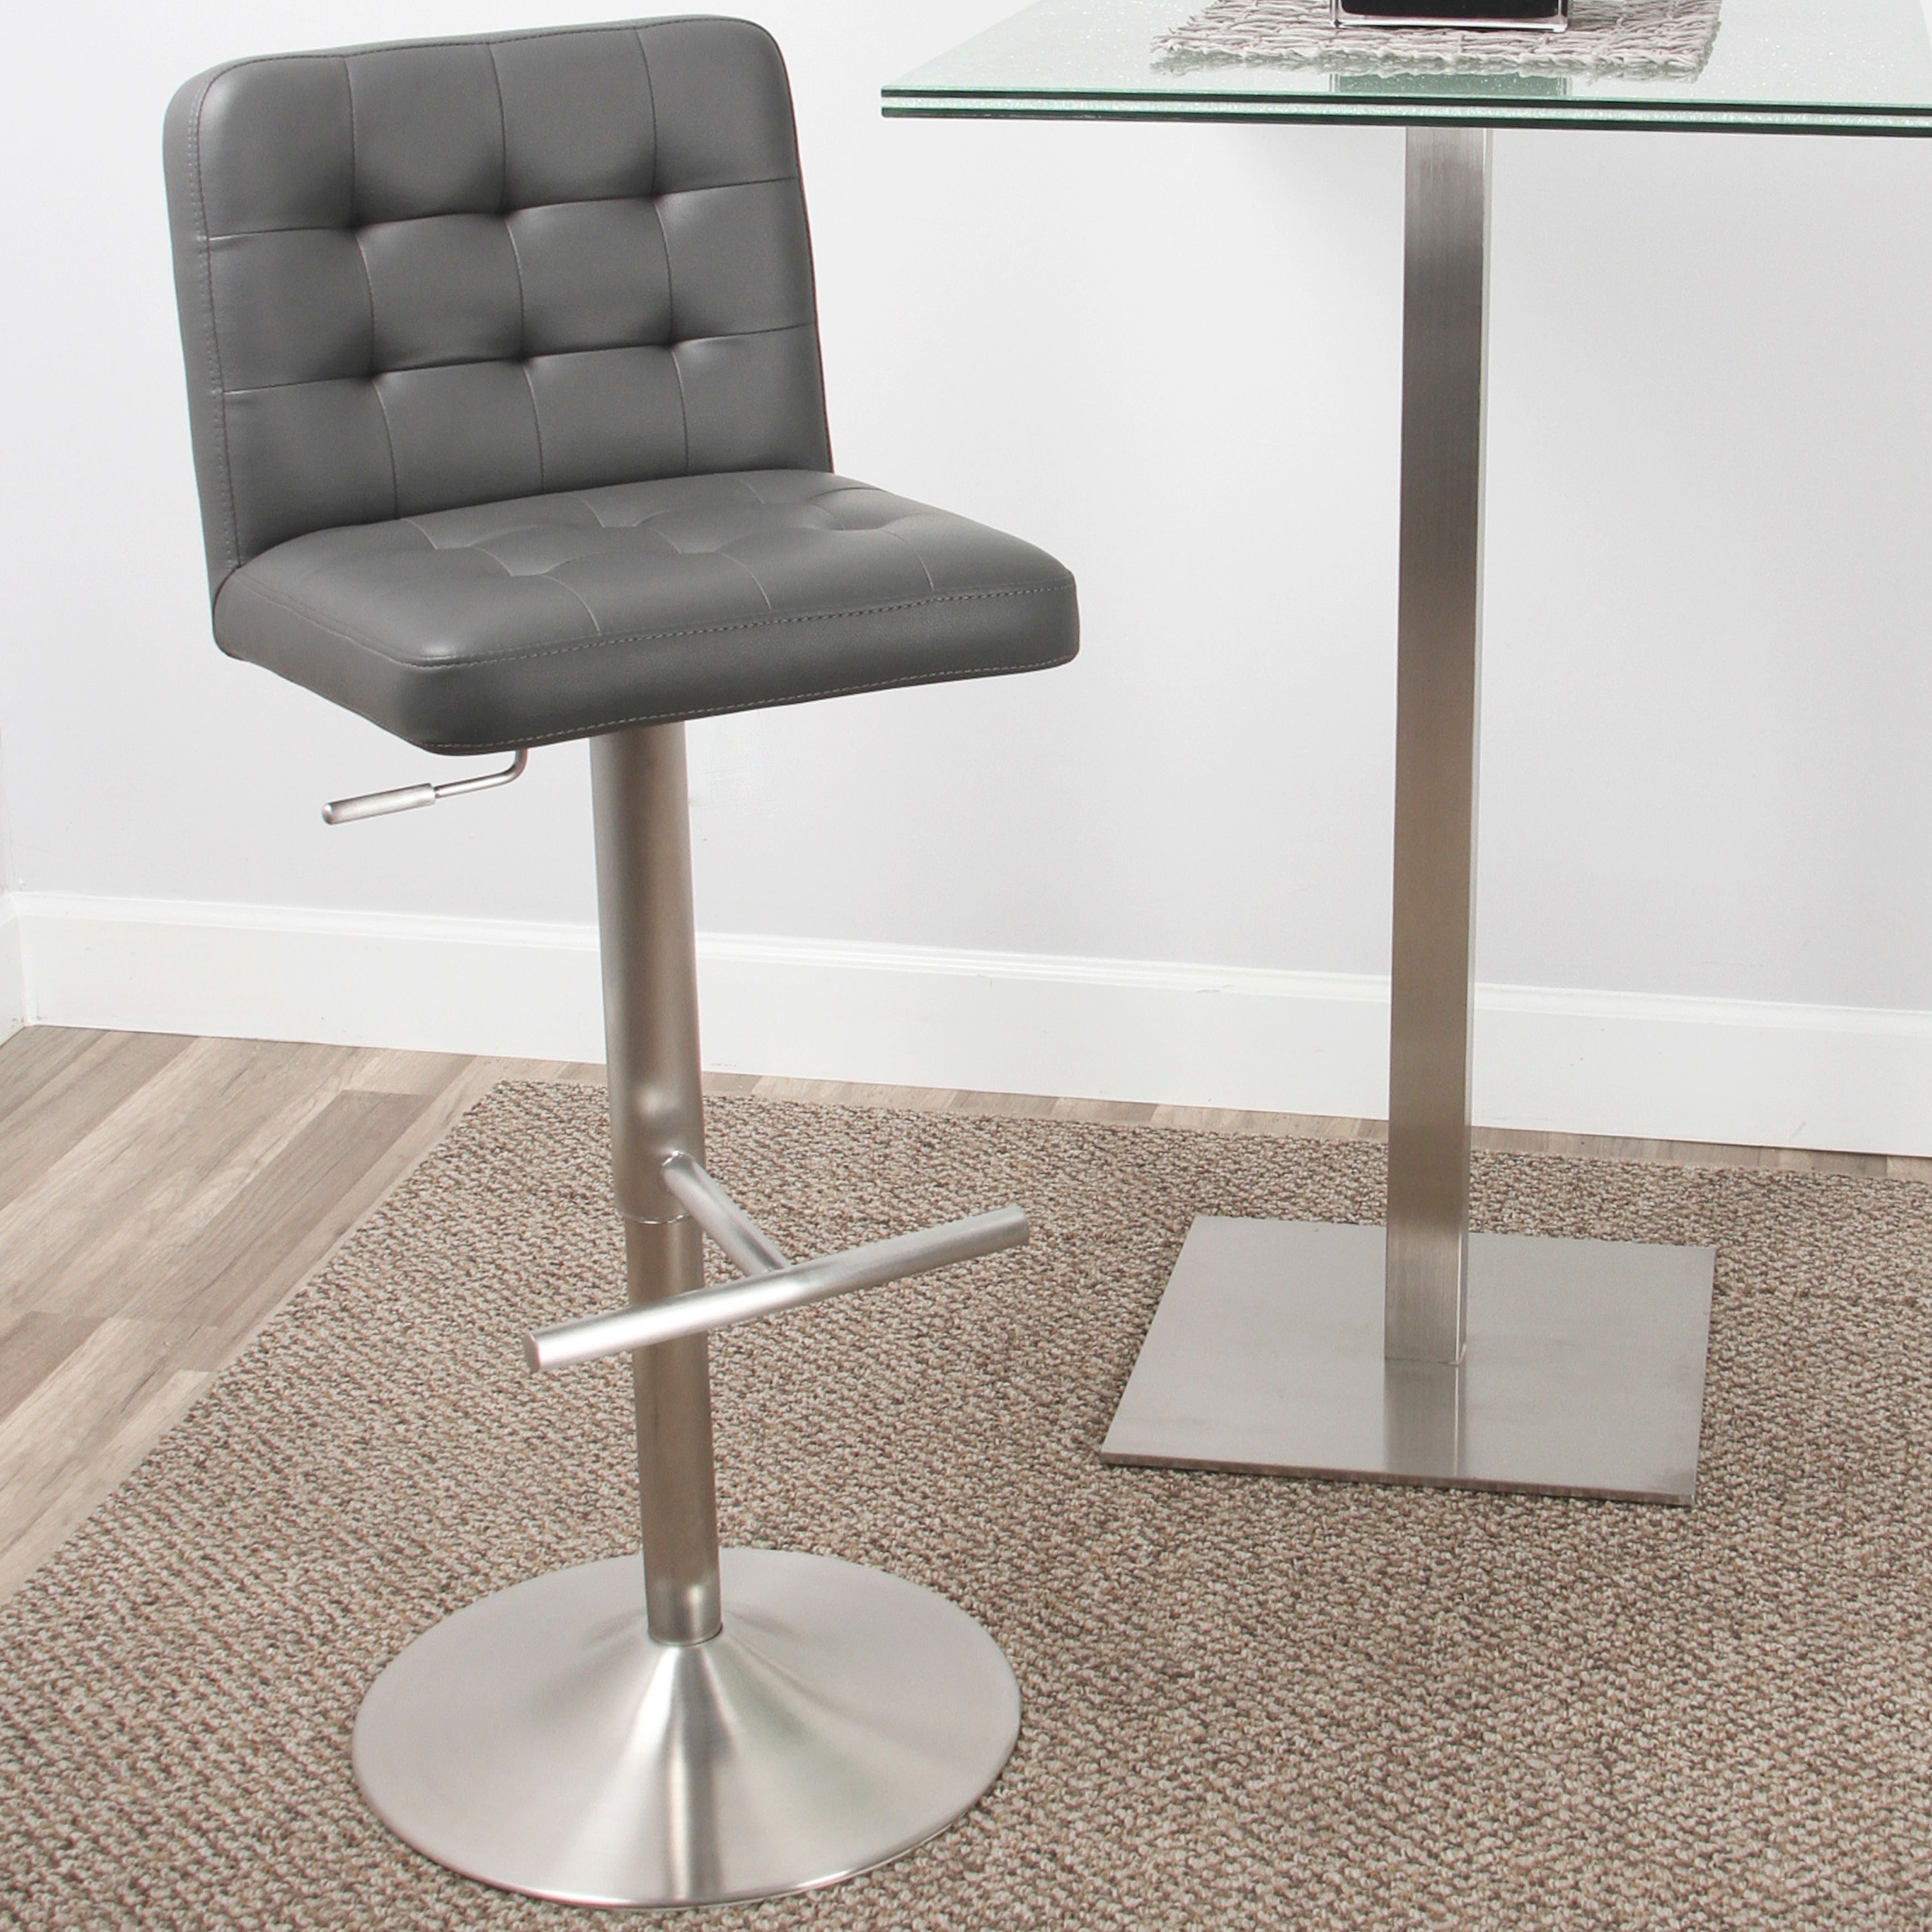 Mix Brushed Stainless Steel Adjustable Height Swivel